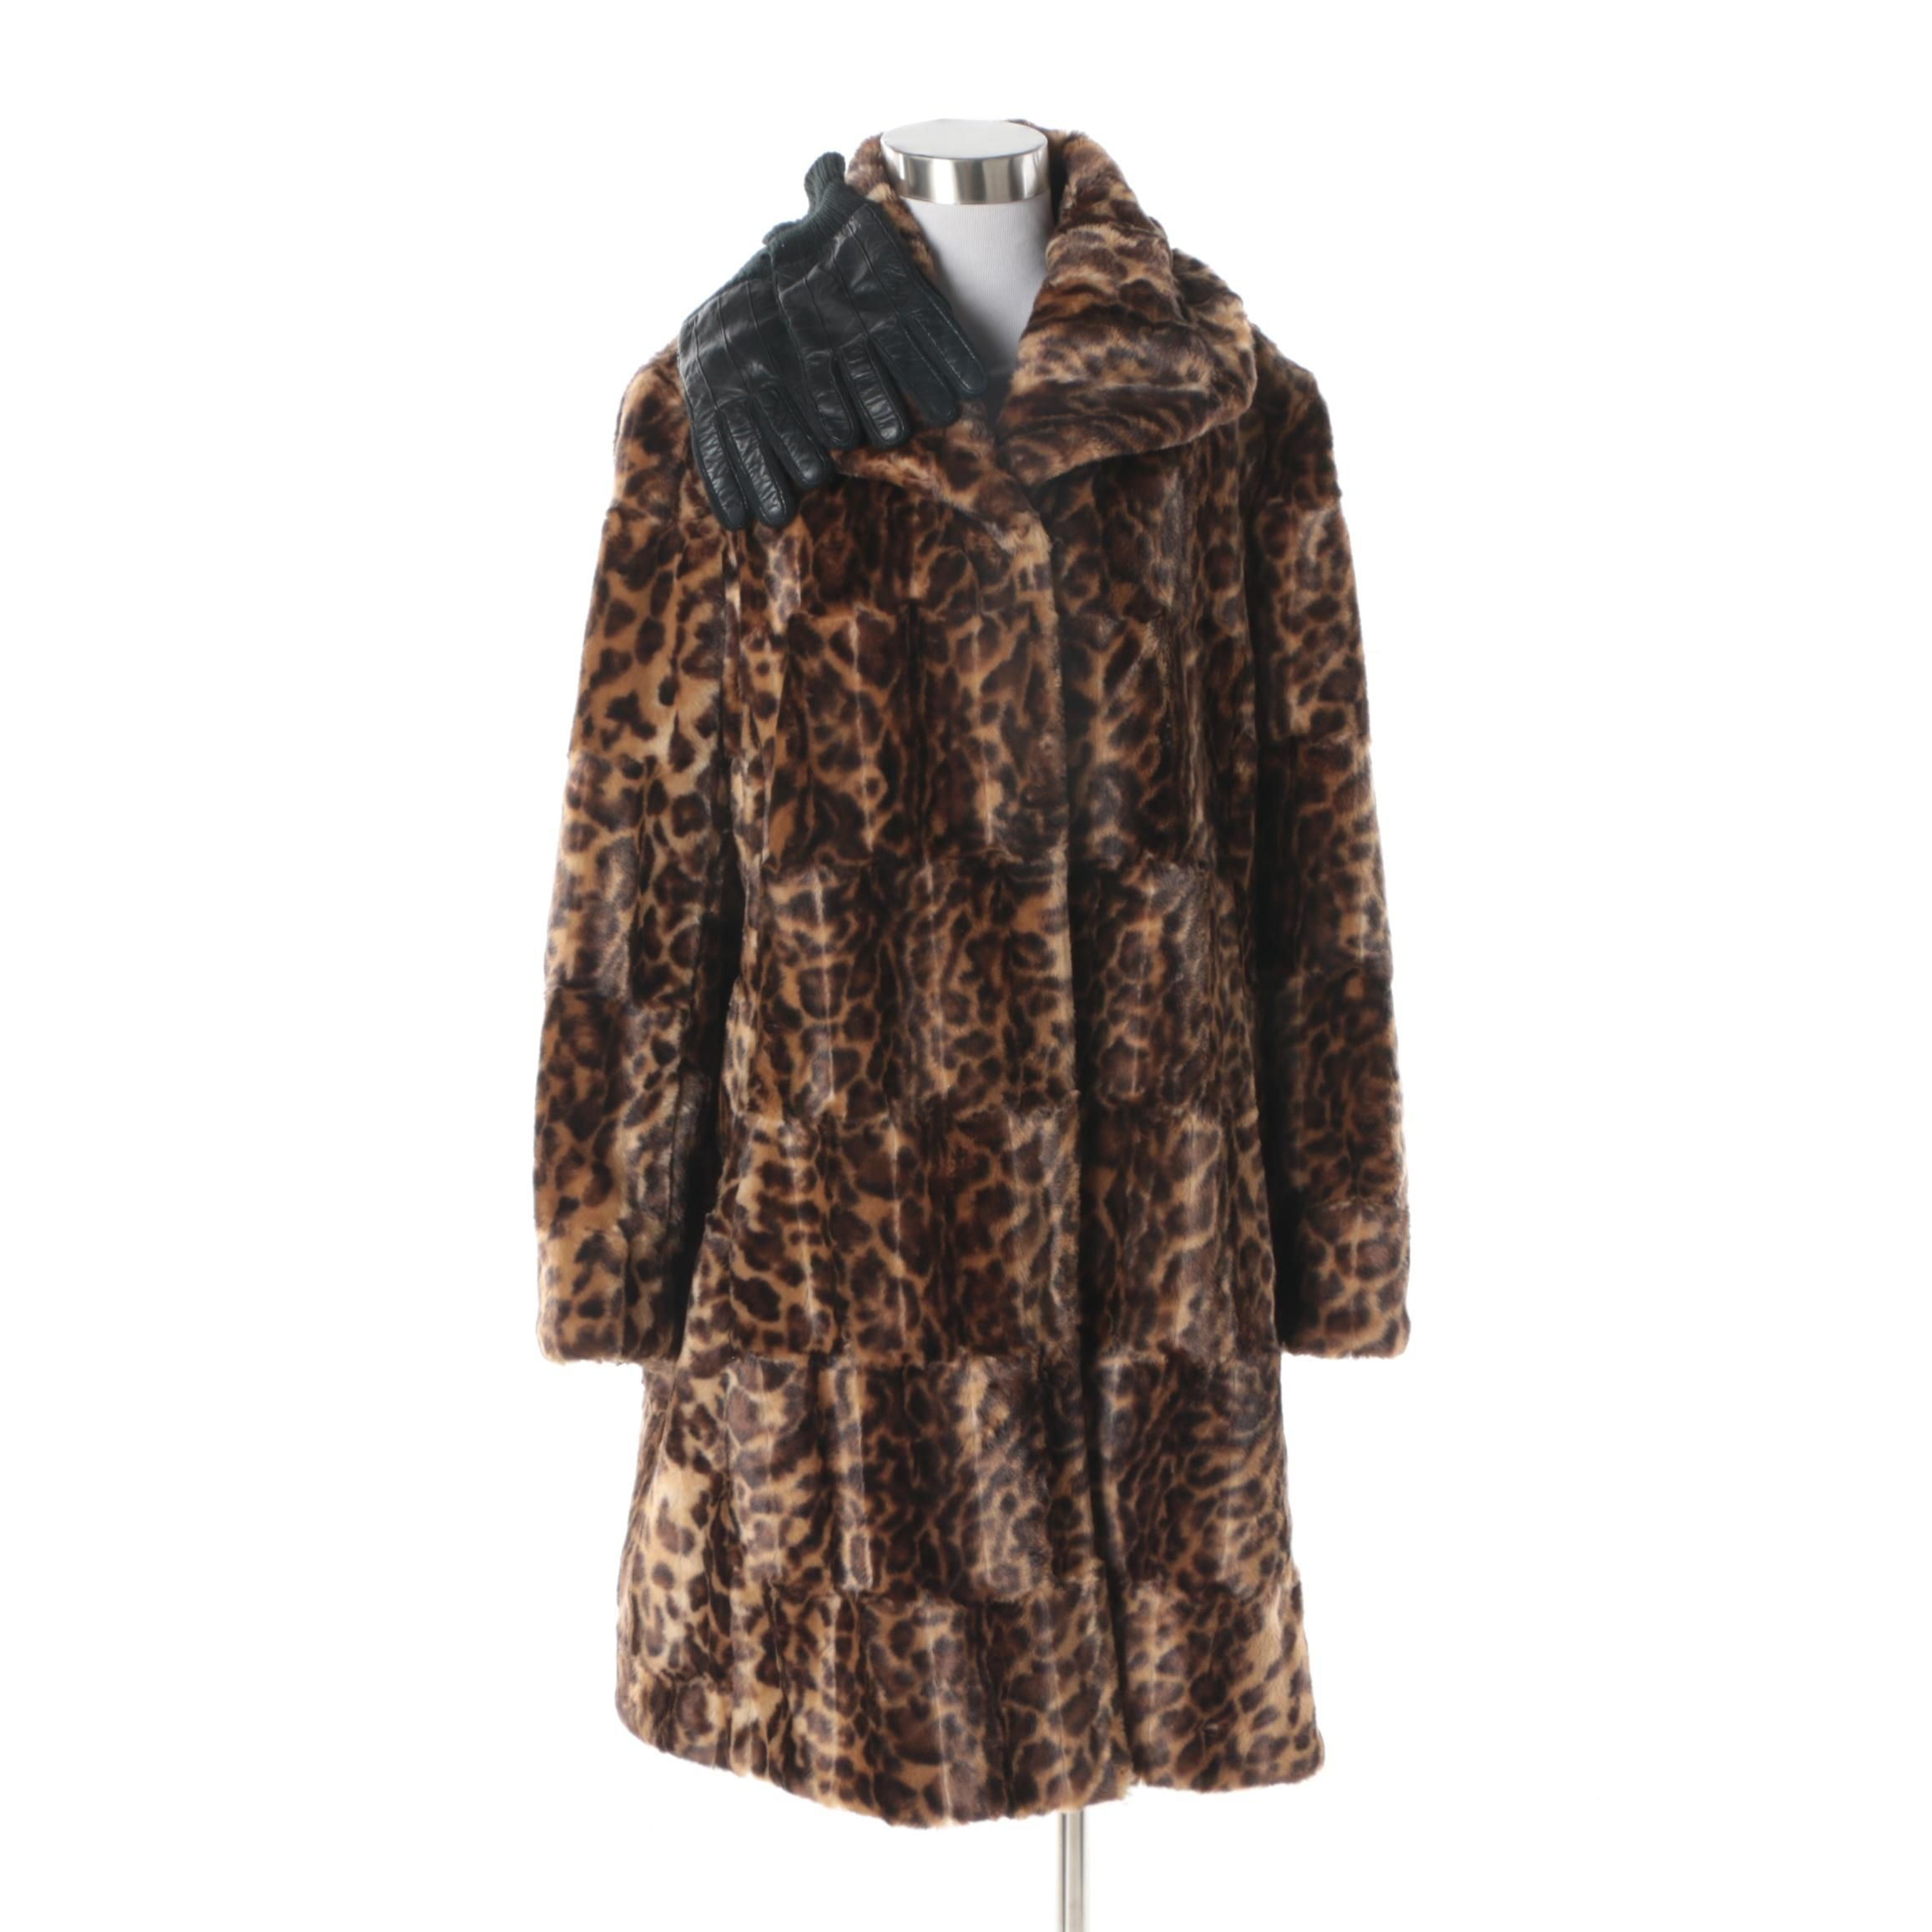 Women's Jones New York Leopard Print Faux Fur Coat with Leather Gloves